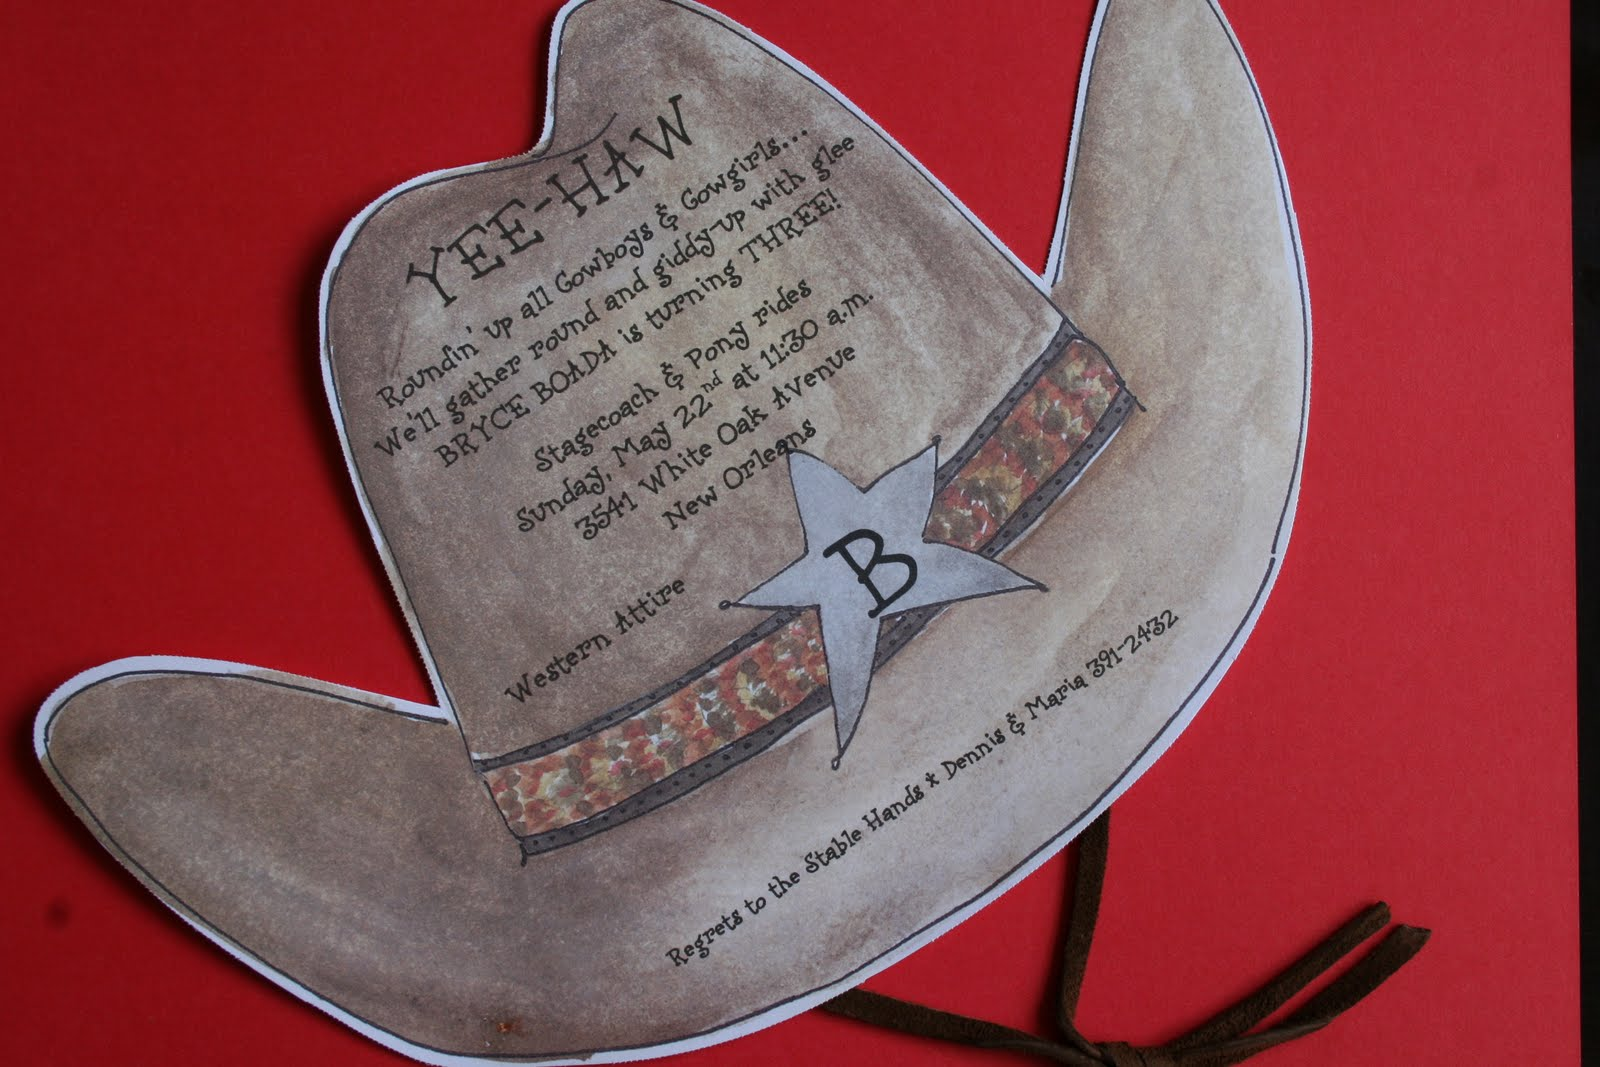 I Purchased The Invitation From One Of My Vendors Julia D Azar Which Were Large Cut Cowboy Shaped Hats With A Leather Strap Most Invitations Are Now